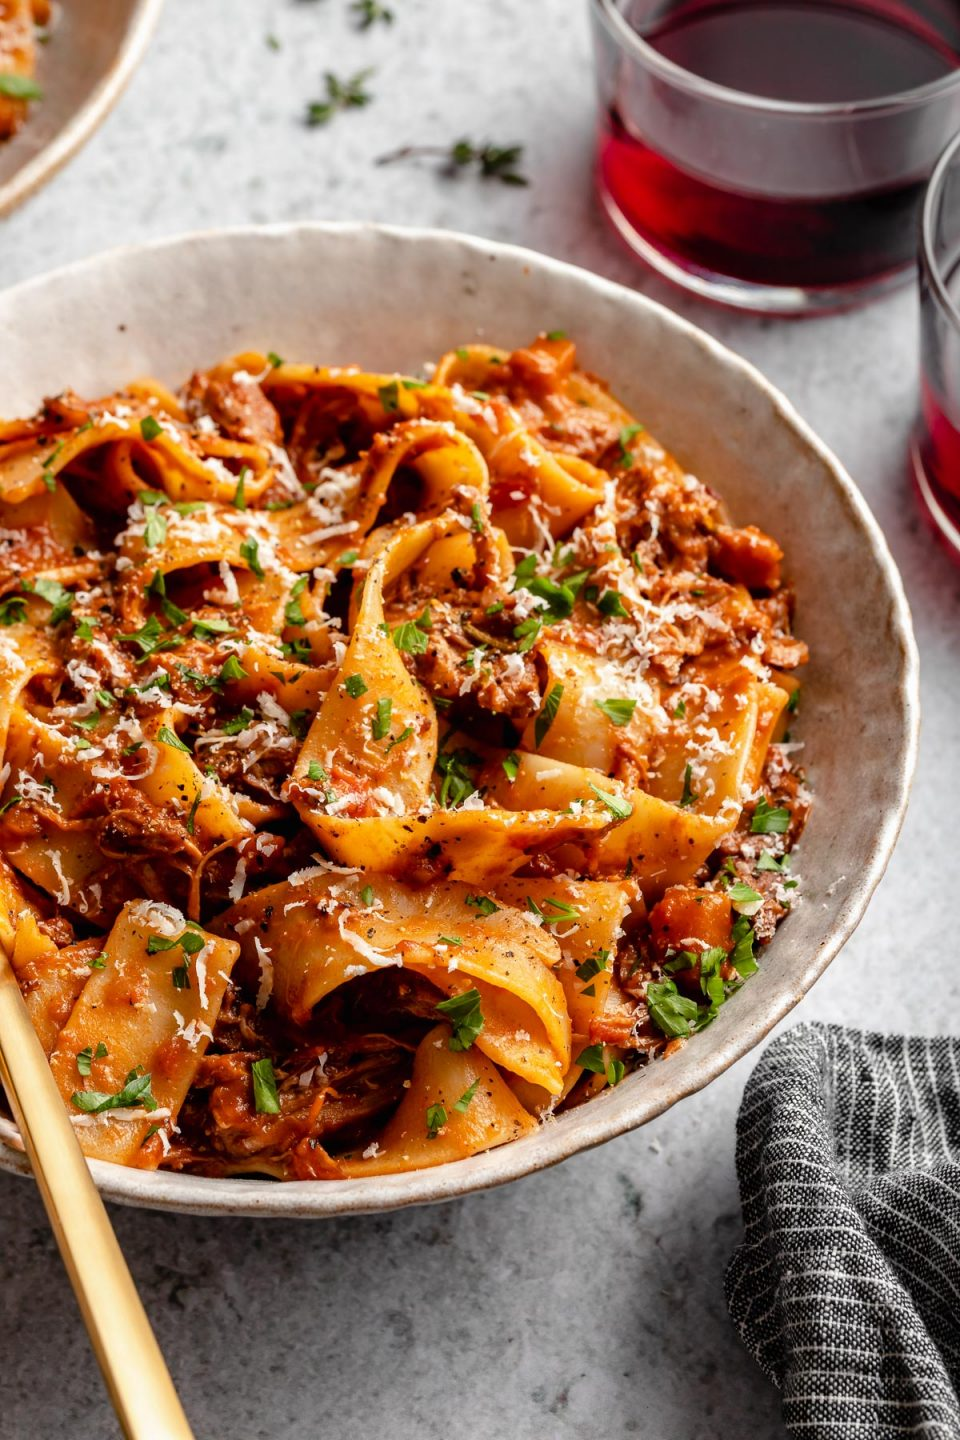 Side angle of Braised Lamb Ragu Pappardelle shown in pasta bowls, topped with grated parmesan & fresh parsley. The bowls sit atop a light blue surface next to fresh herbs, 2 glasses of red wine & a grey striped linen napkin.